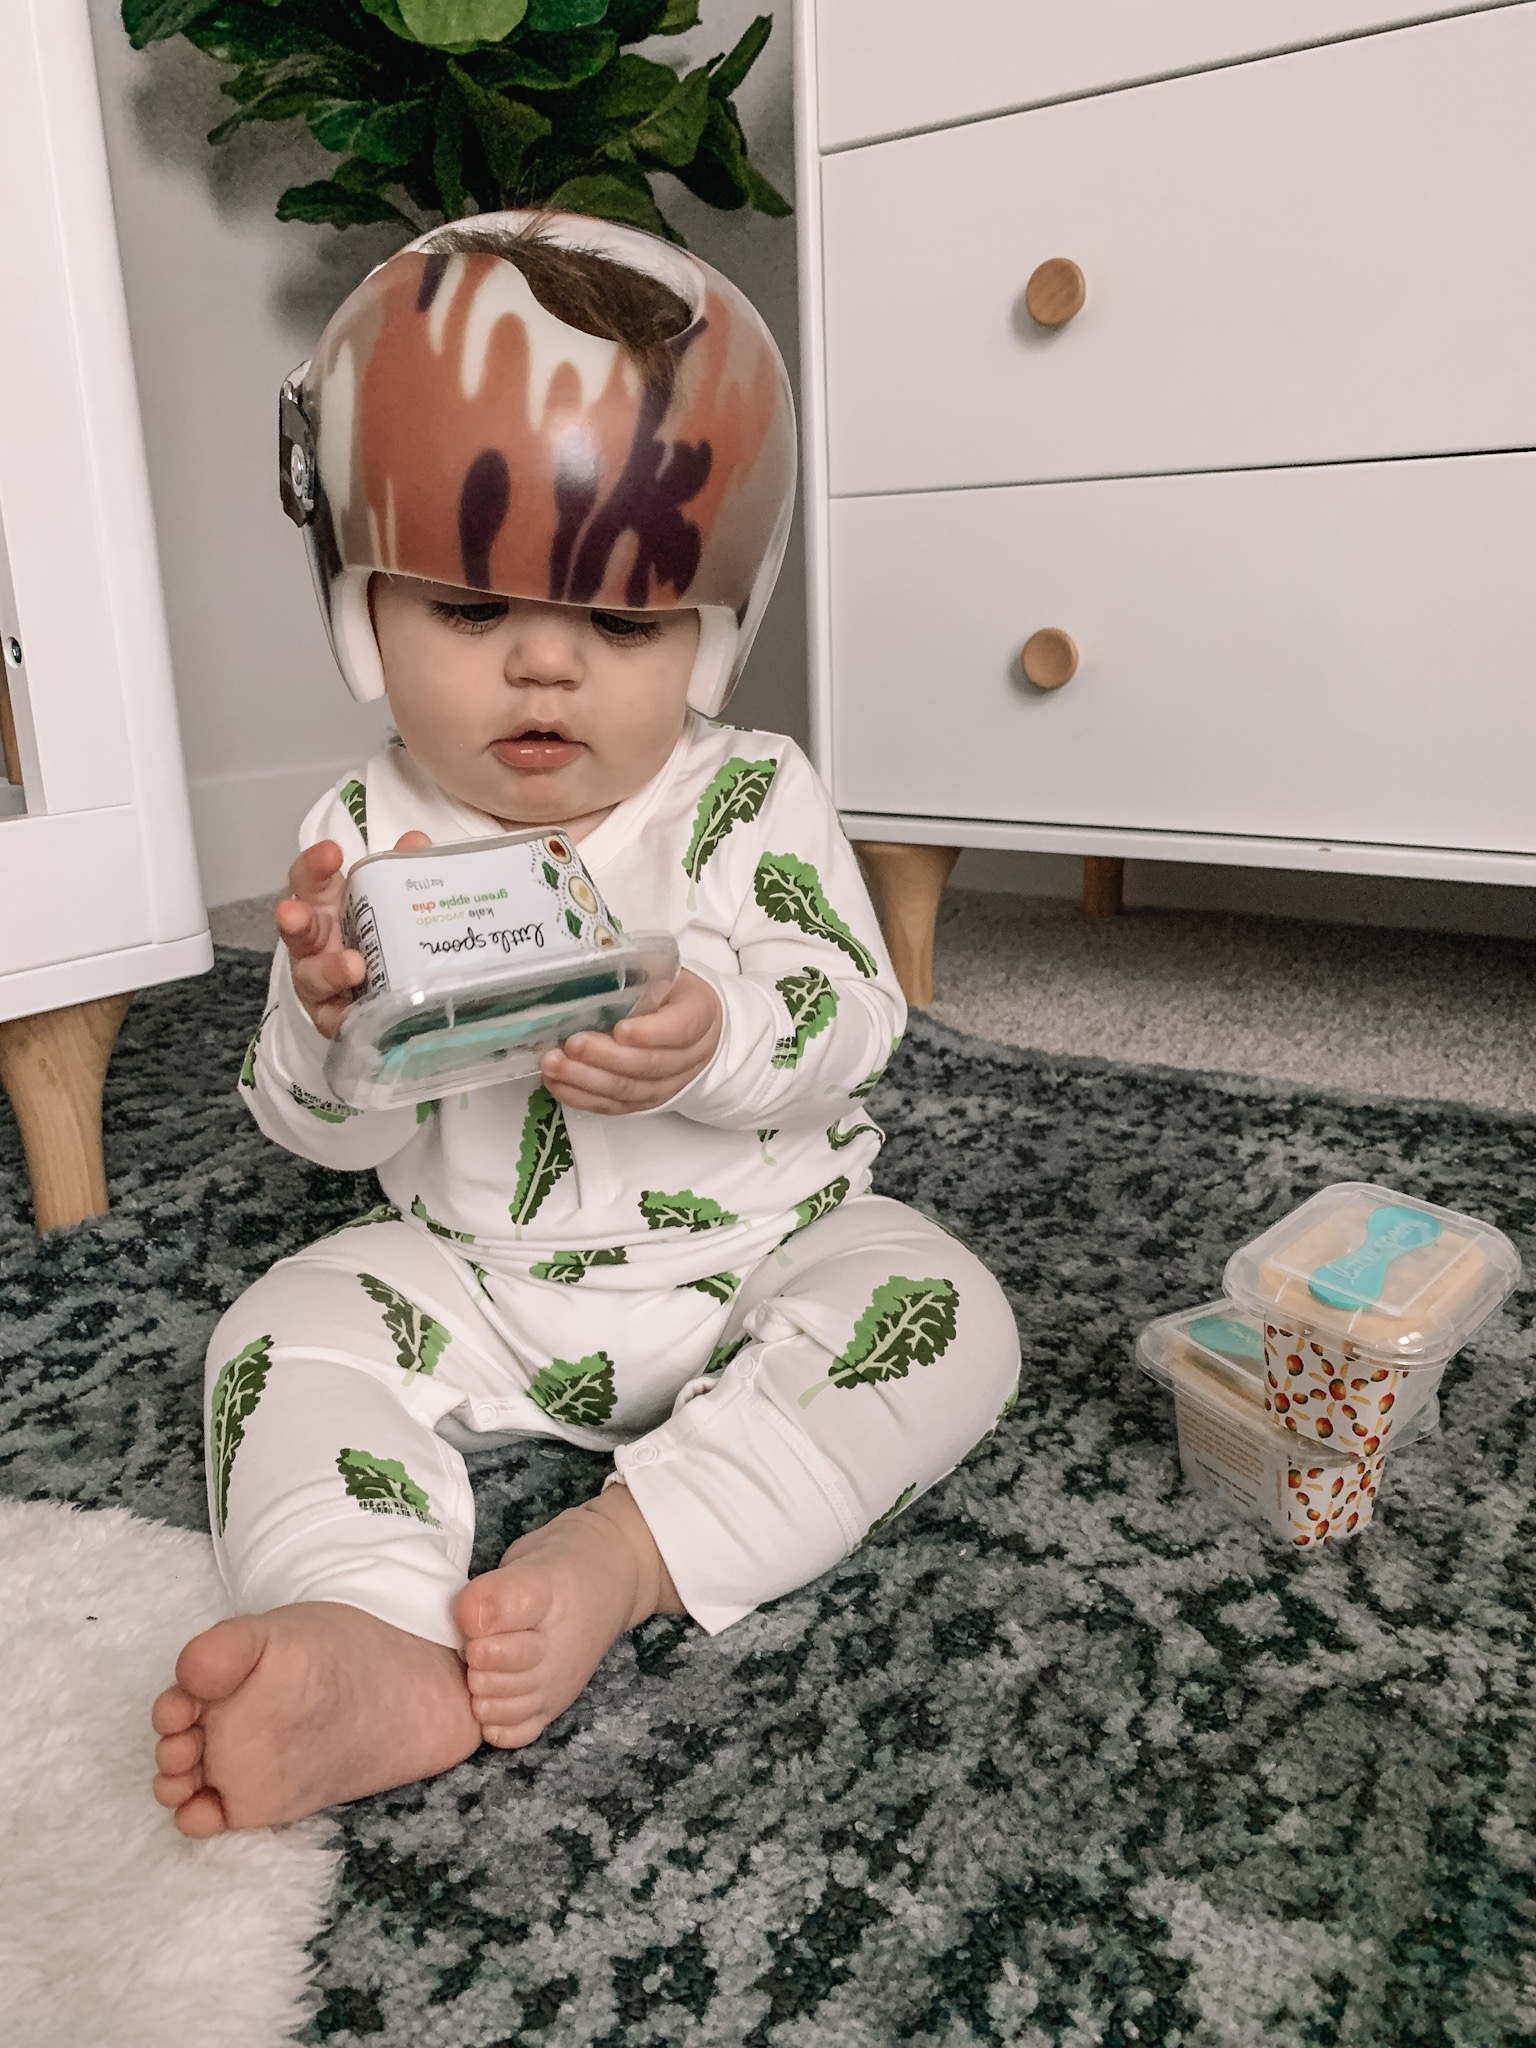 aden + anais kale onesie, little spoon review, 8 month baby update, schedule, Keldon